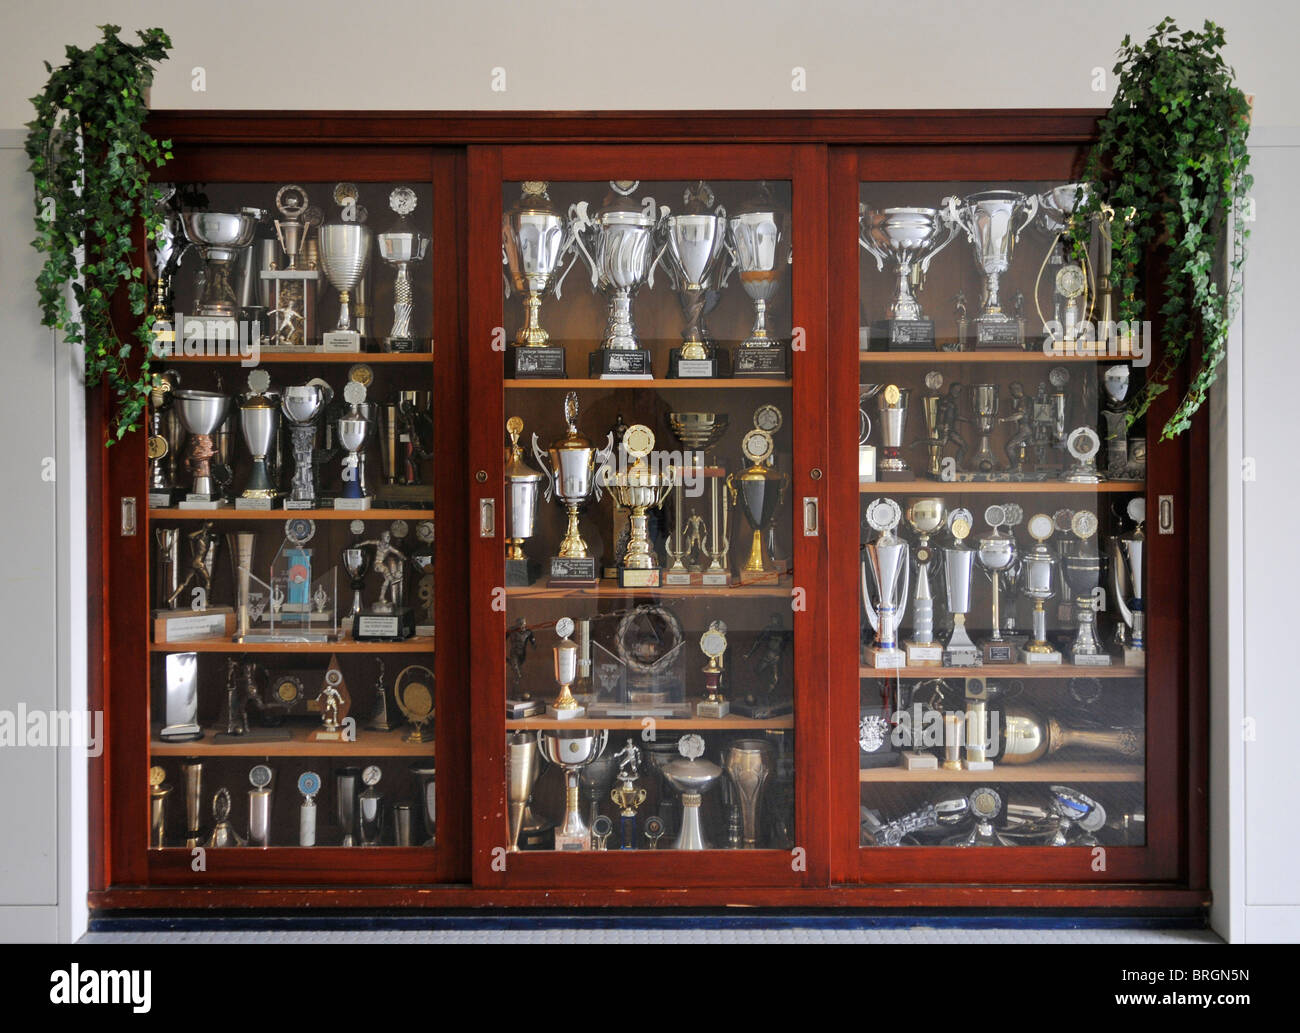 Trophy Cabinet Stock Photos  Trophy Cabinet Stock Images